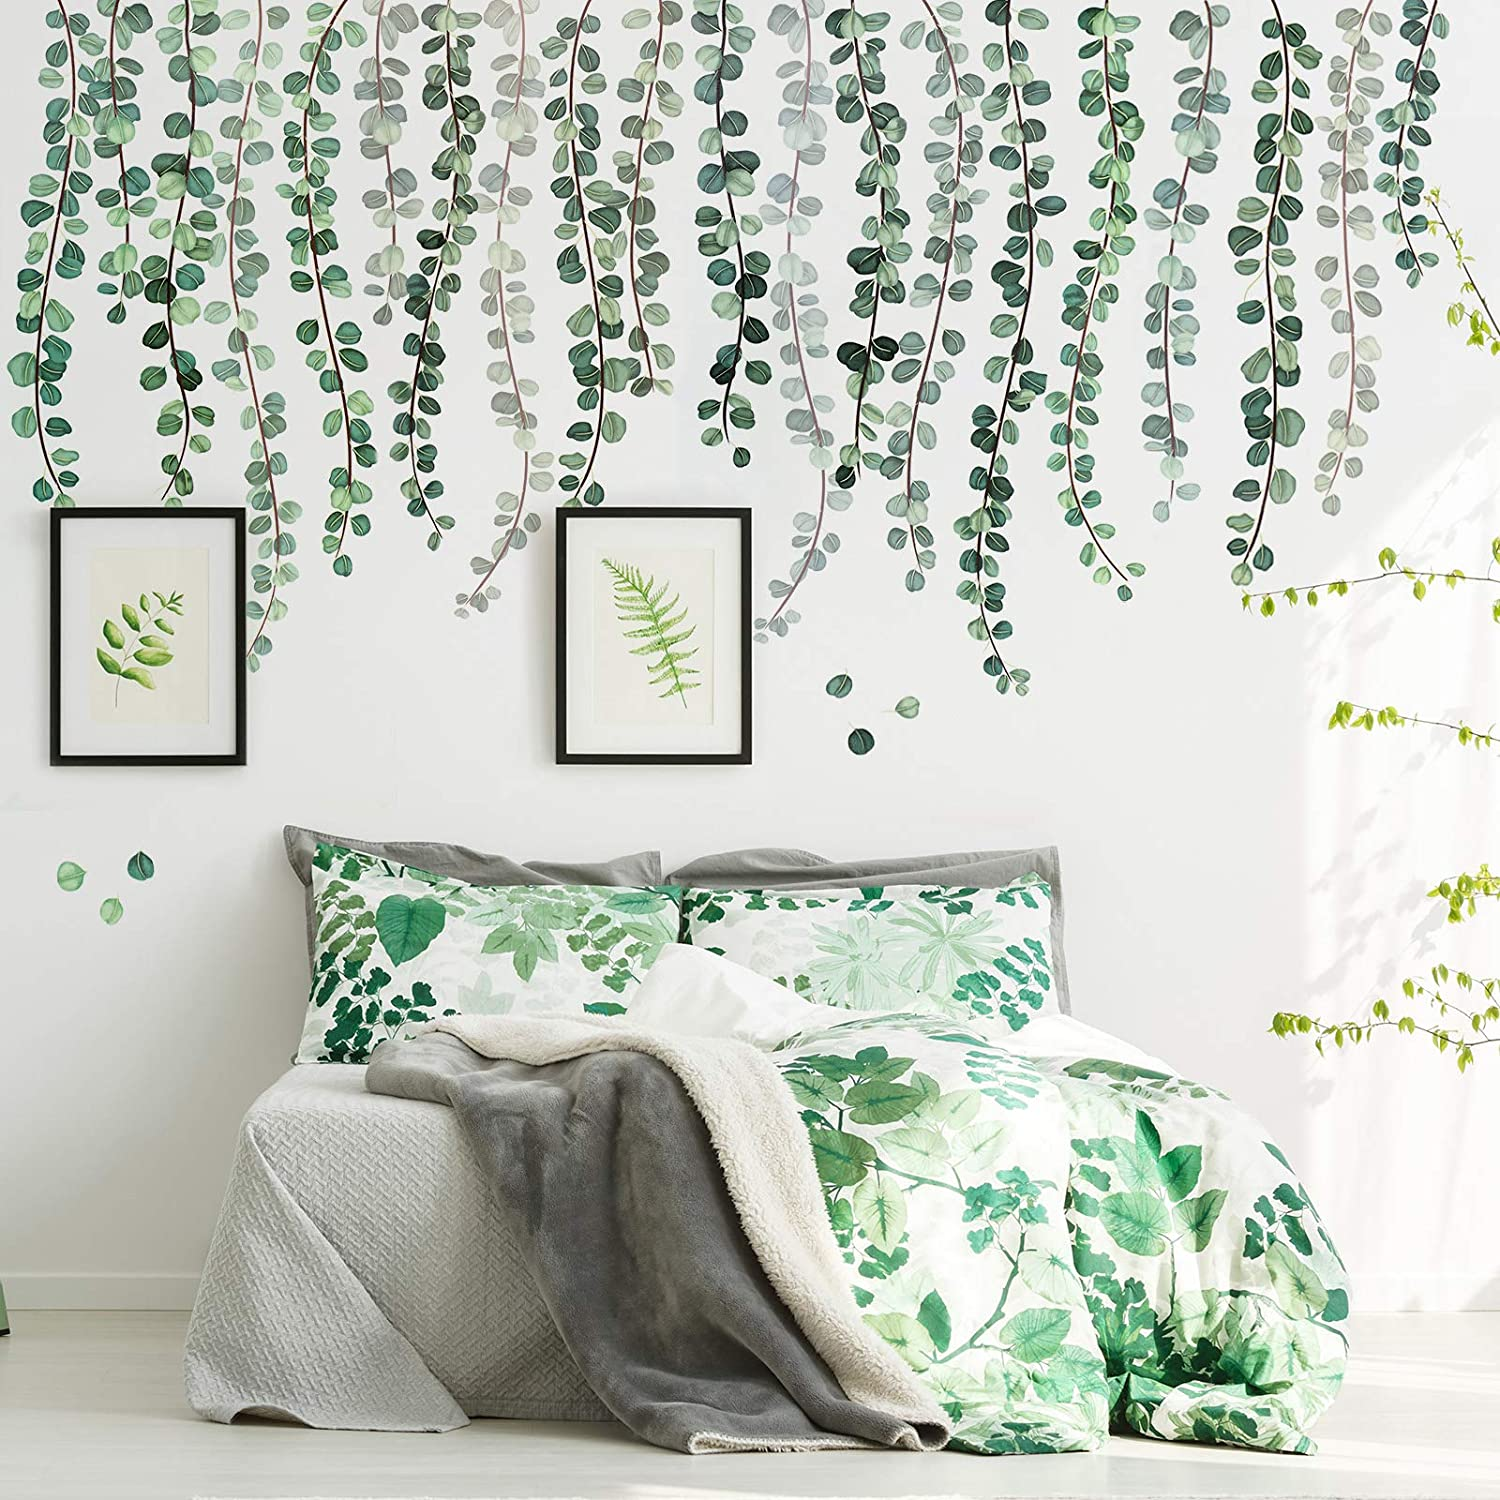 Green Plants Eucalyptus Vine Leaves Wall Decal Removable Watercolor Wall Art Decor Peel and Stick Wall Sticker Art Murals Decoration for Home Nursery Decor Living Room (7 Sheets,11.8 x 35.4 Inch)